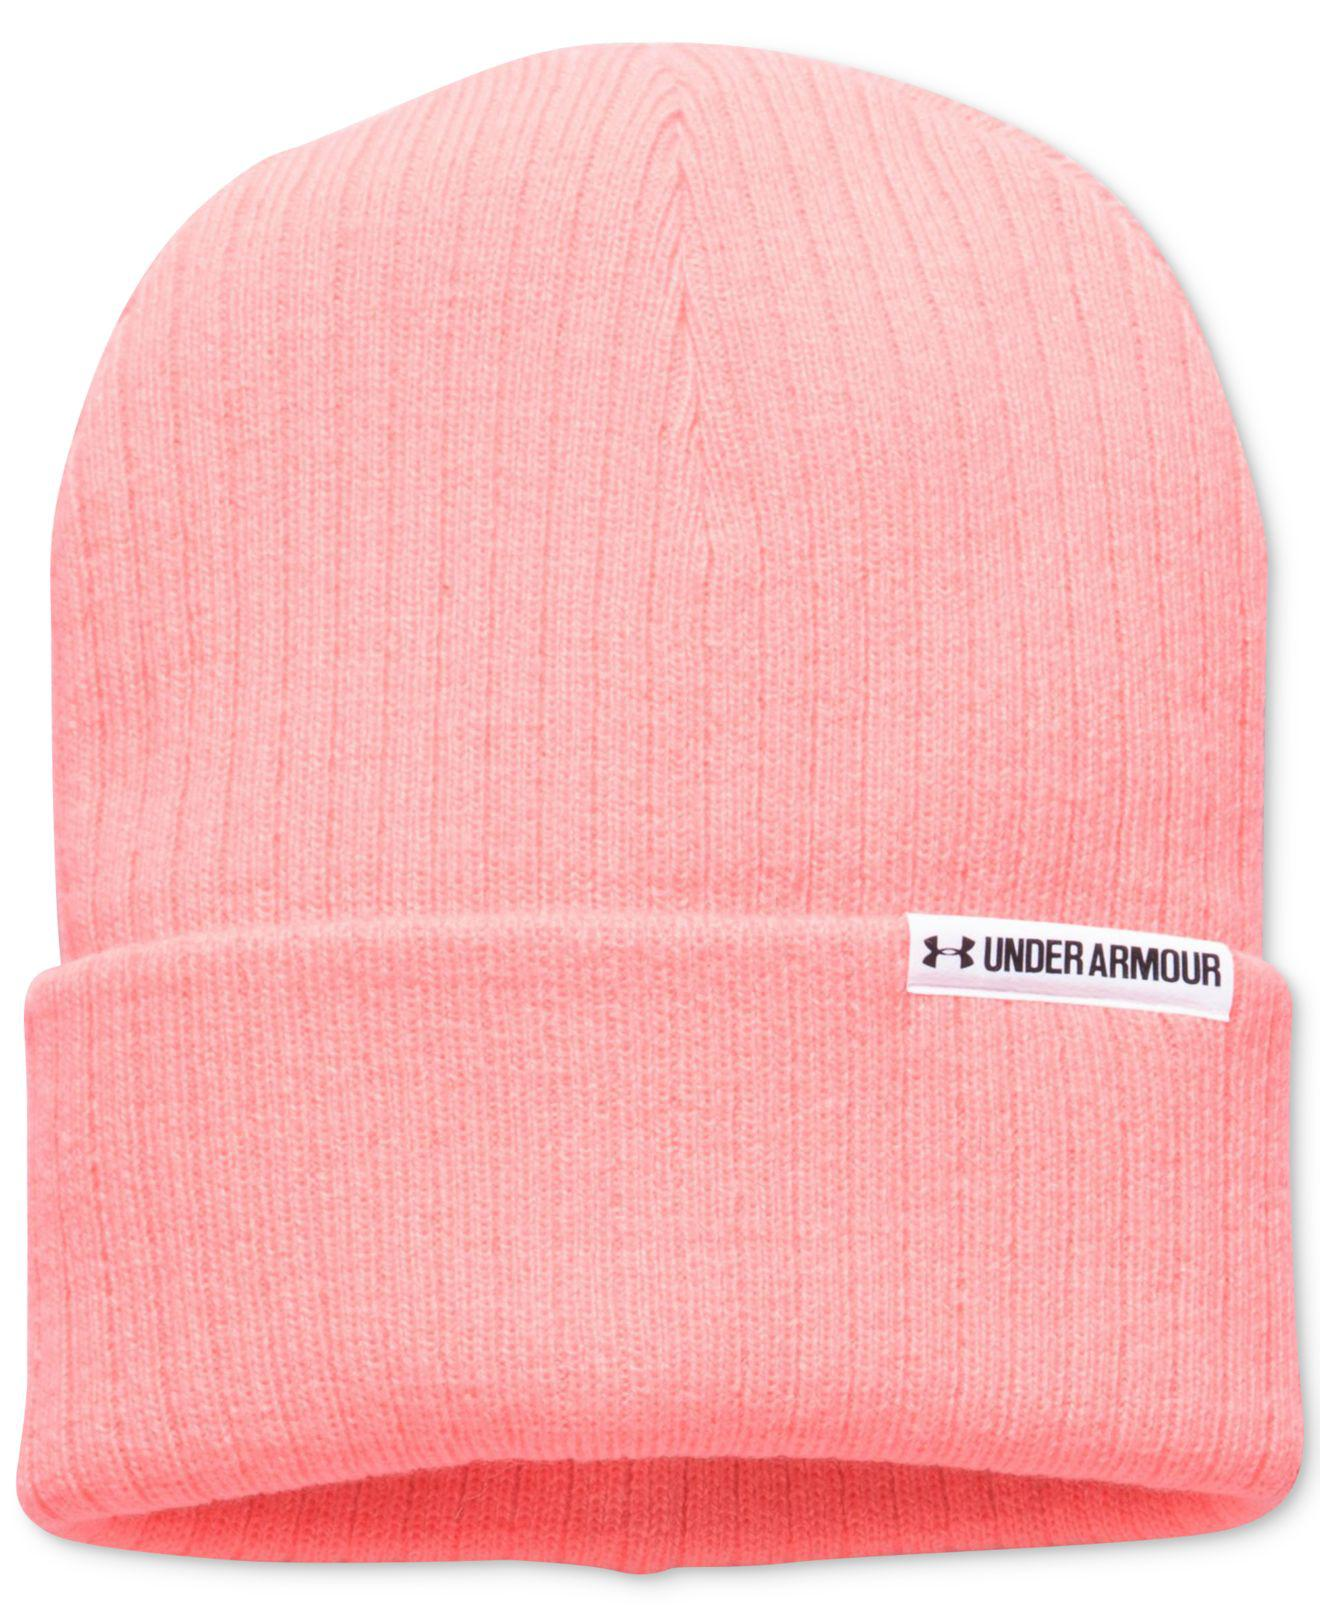 bed8b896576 ... spain lyst under armour boyfriend cuff beanie in pink 7a97b fbe77